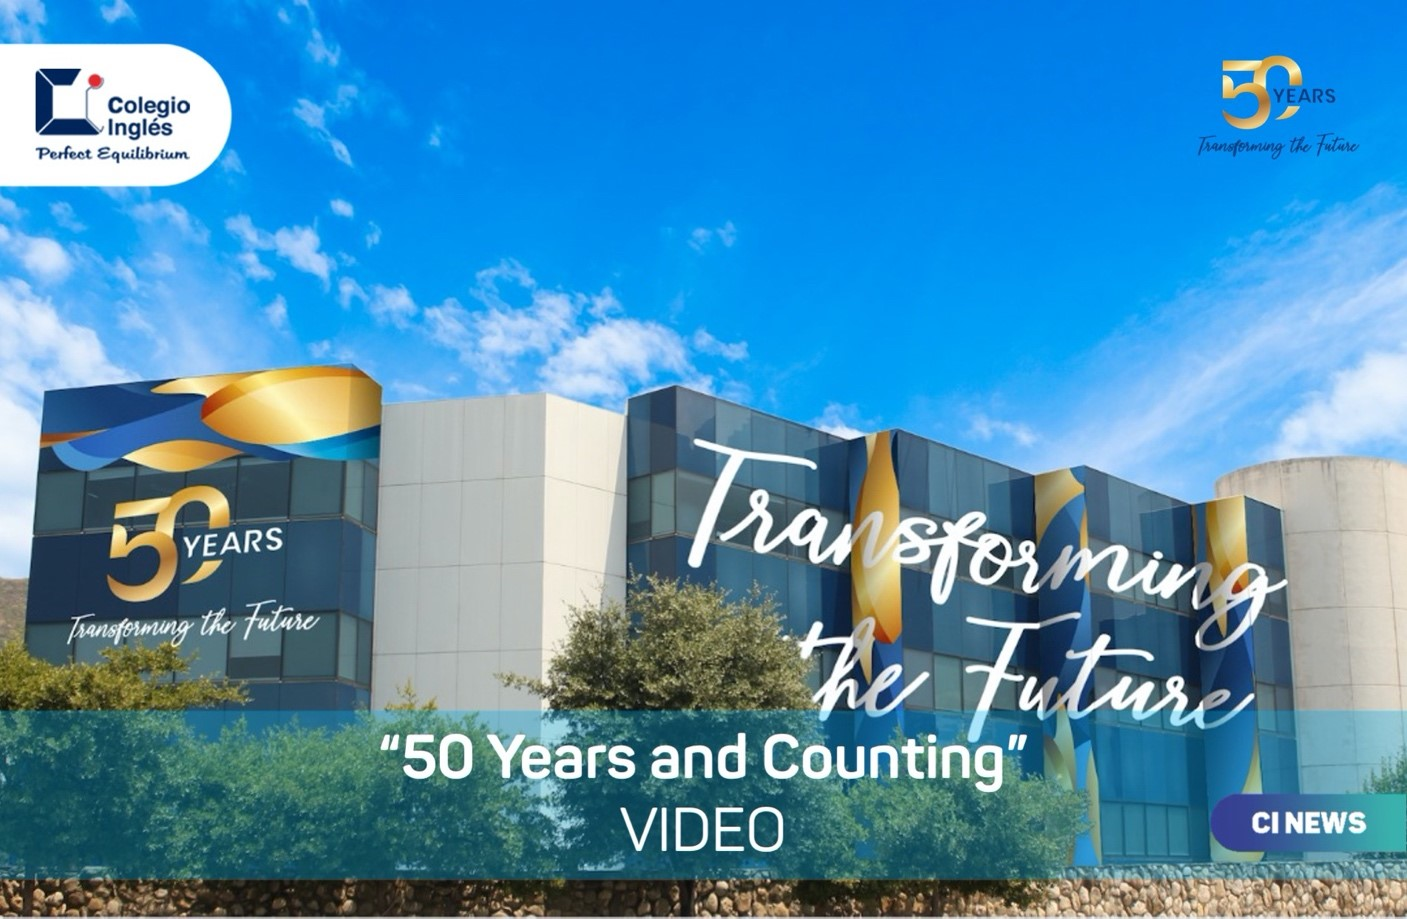 Video 50 Years and Counting